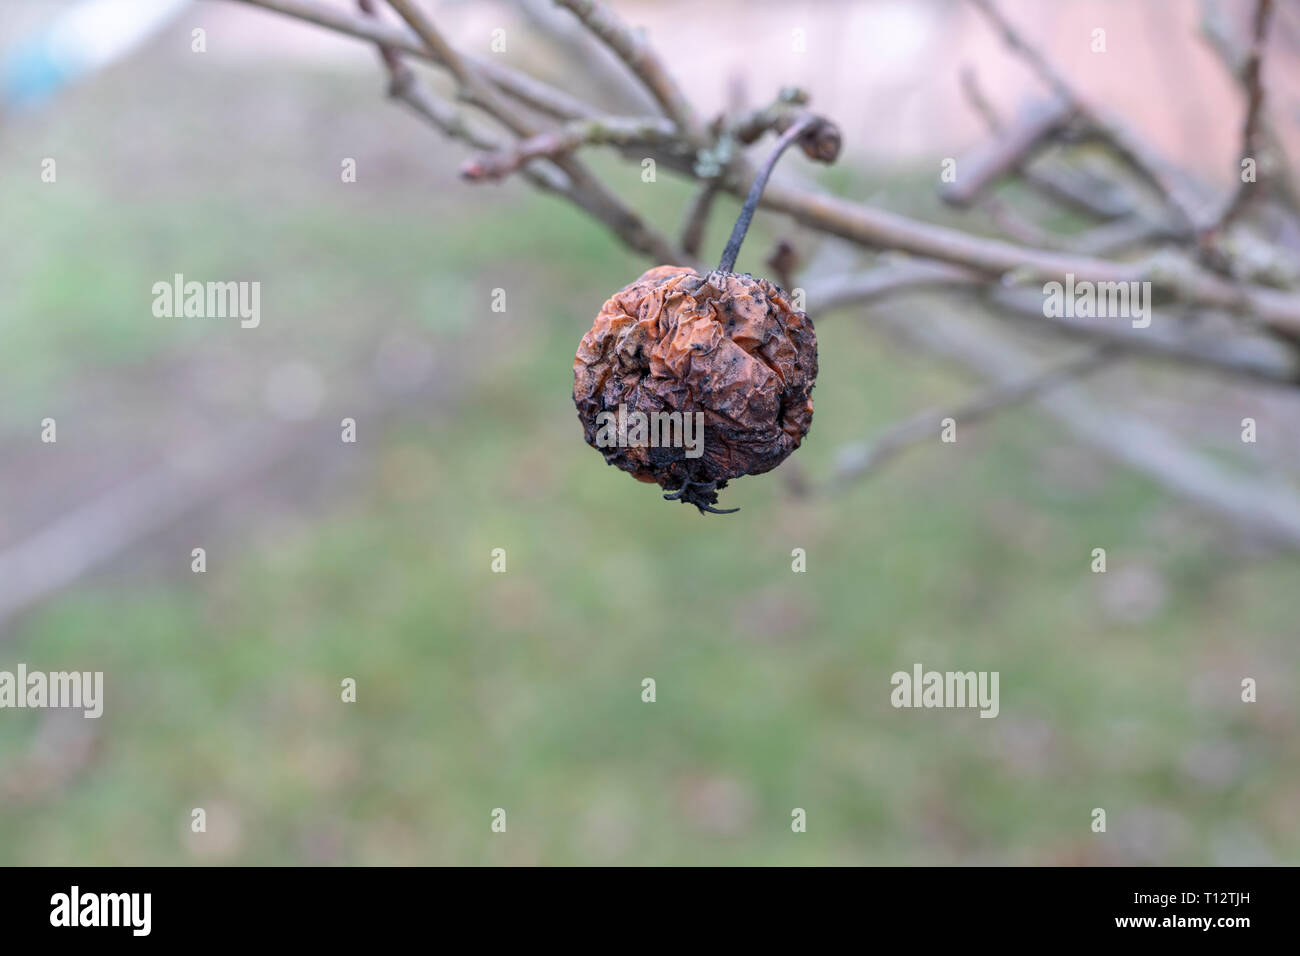 Plant diseases. Monilinia fructigena. Infected apples grow in the tree branch with typical signs of disease - Stock Image